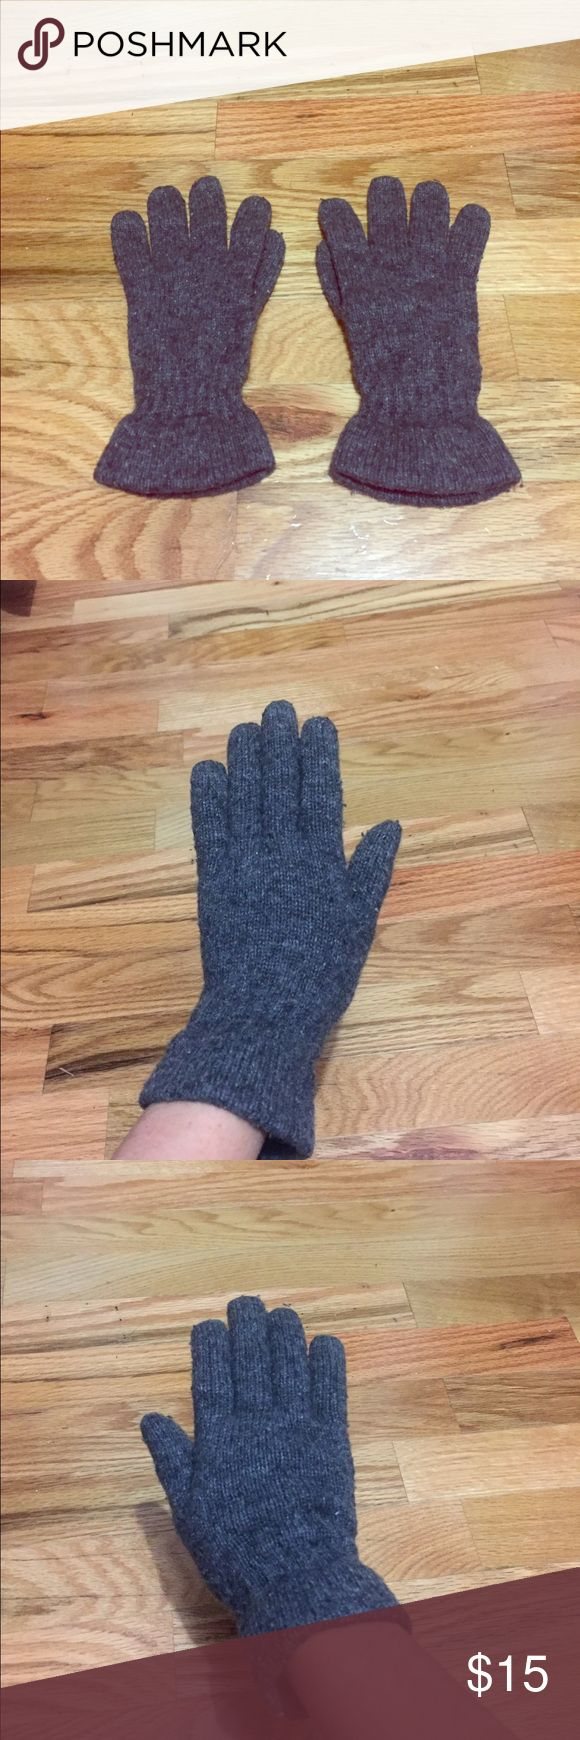 Urban Outfitters Gloves These gently used grey gloves from Urban Outfitters are perfect for these cold months now and ahead! These are 50% wool and 50% nylon! They are very warm and comfortable, and they are in really good condition!! Urban Outfitters Accessories Gloves & Mittens